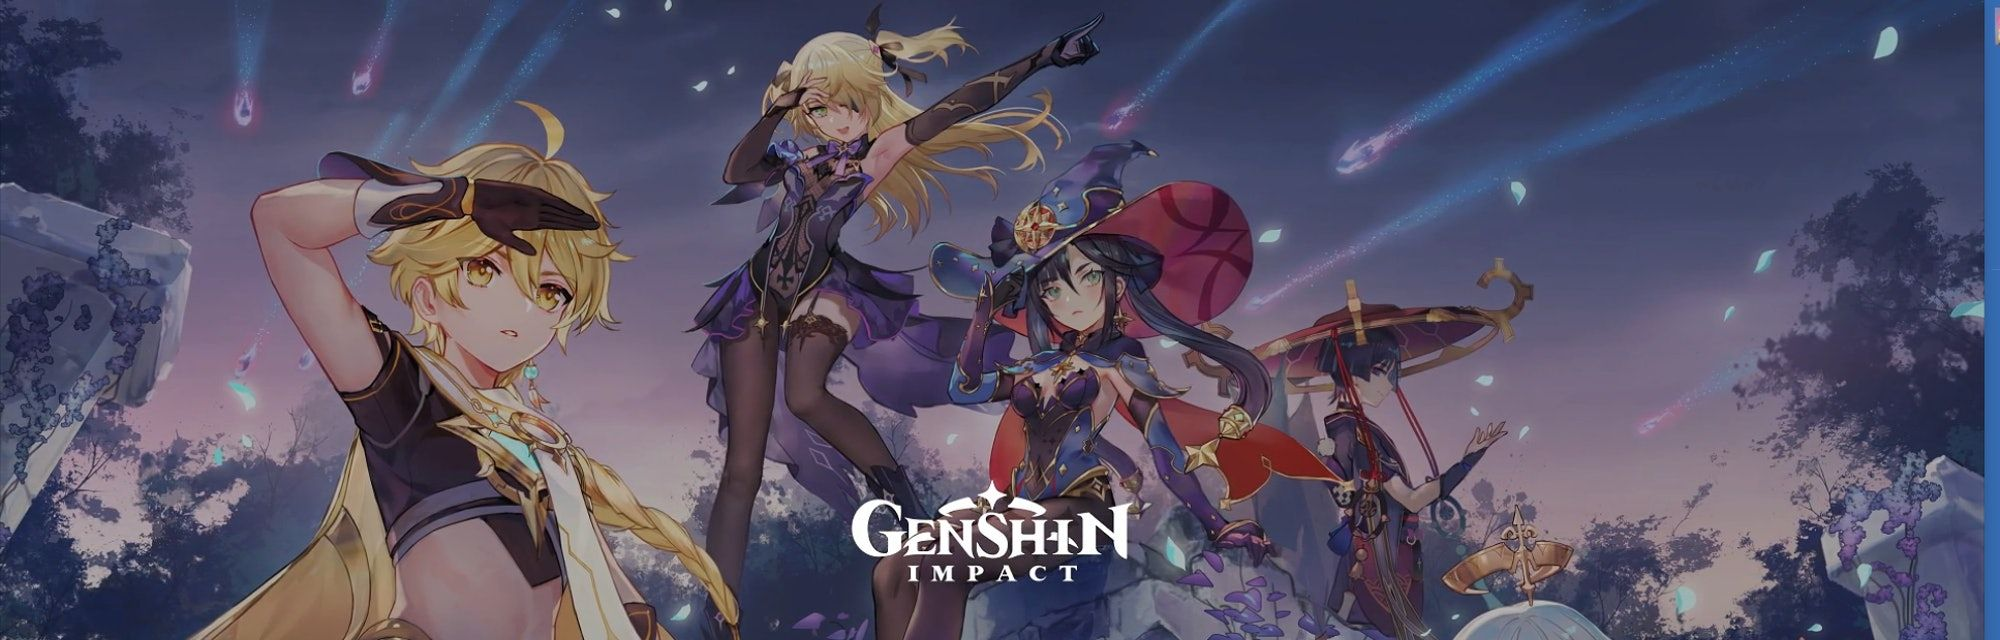 Genshin Impact' update 1.1 release date, 2021 roadmap, and leaks detailed